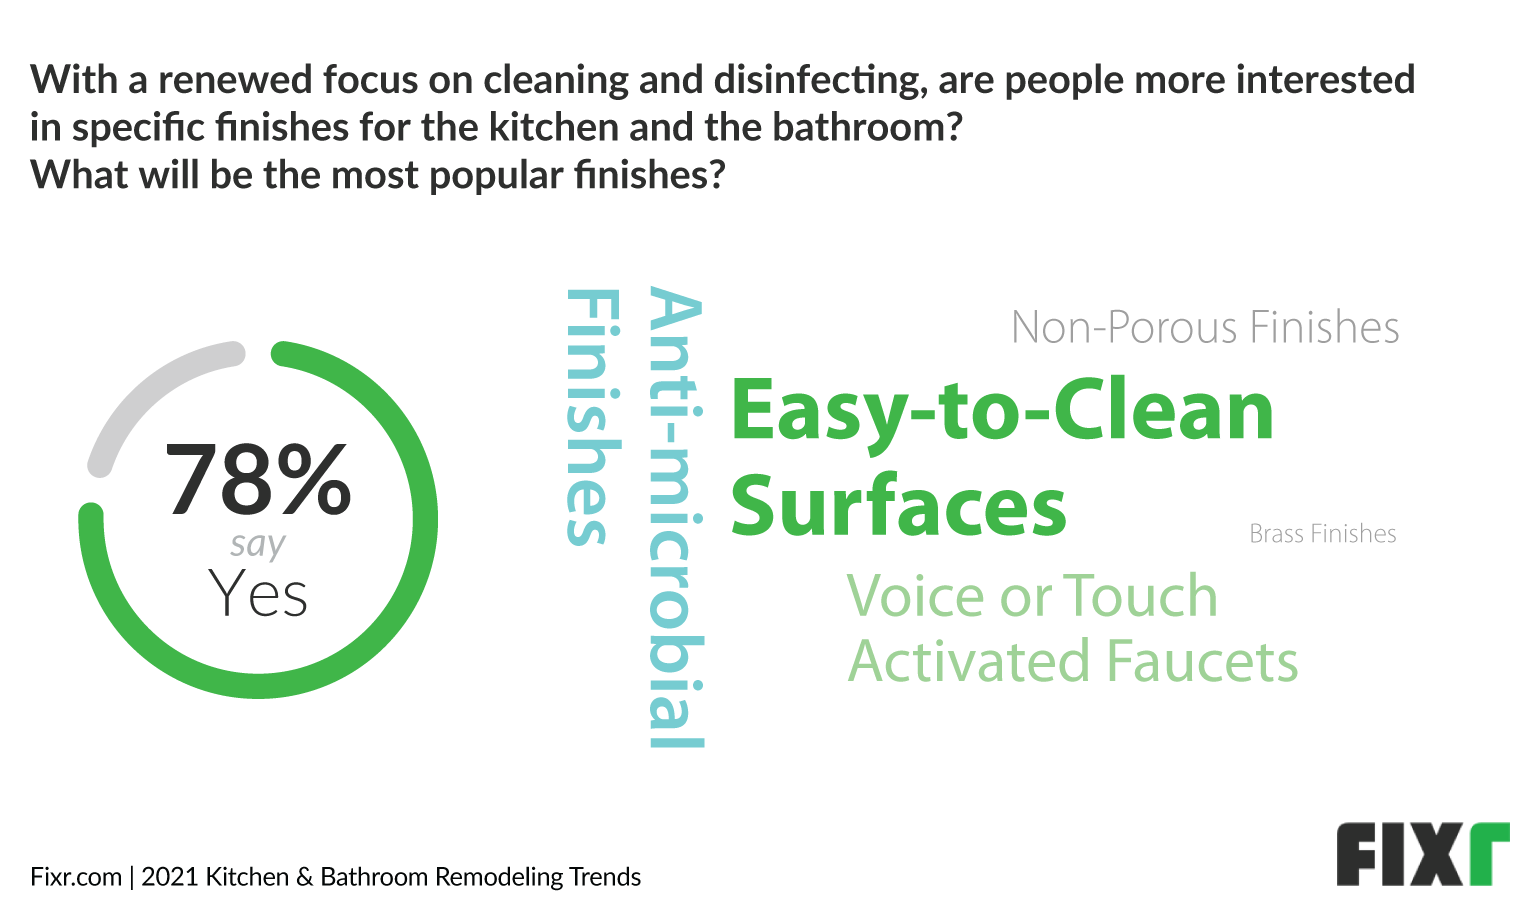 Kitchen Trends 2021 - Increased Interest in Easy-to-Clean Surfaces